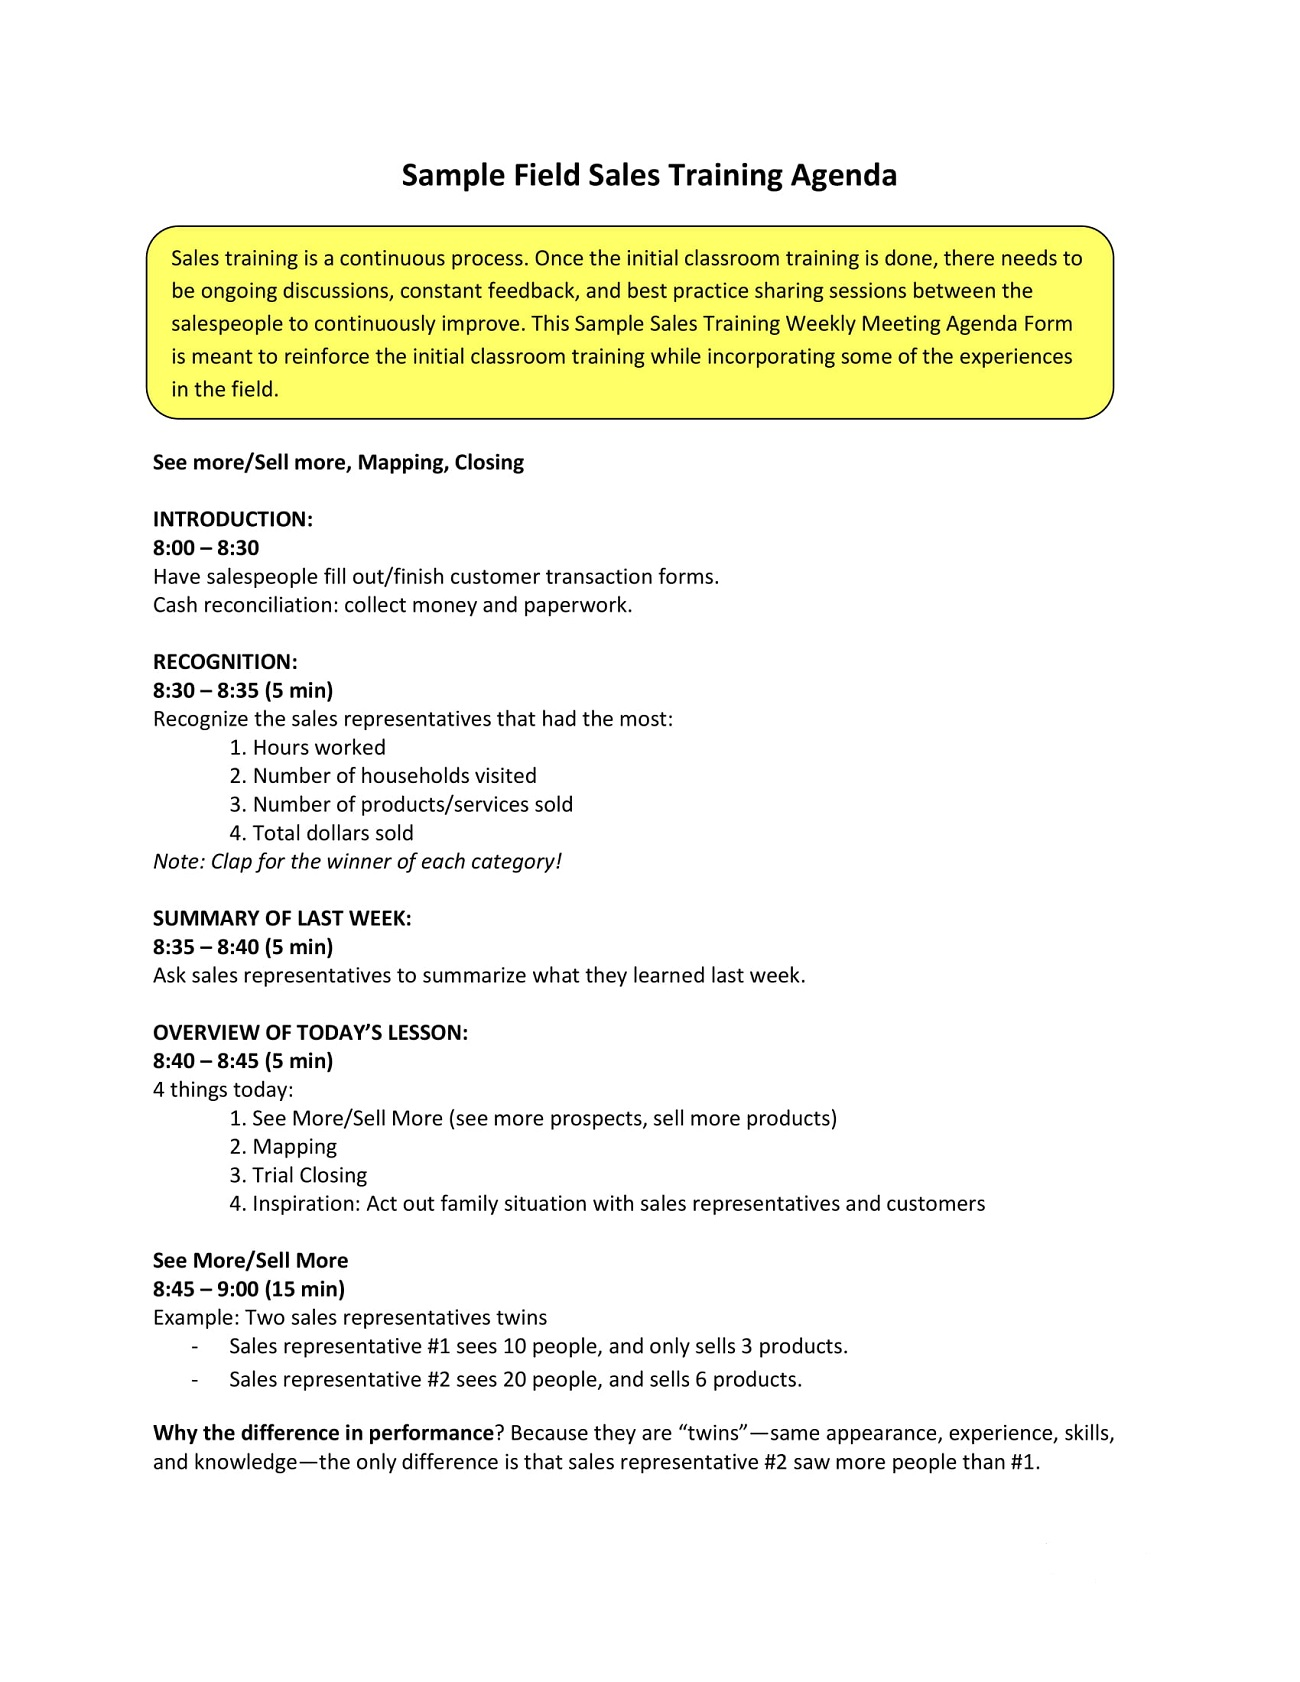 Field Sales Training Agenda Sample PDF Template Microsoft Word Ppt How To Create A Pdf Layout  Full